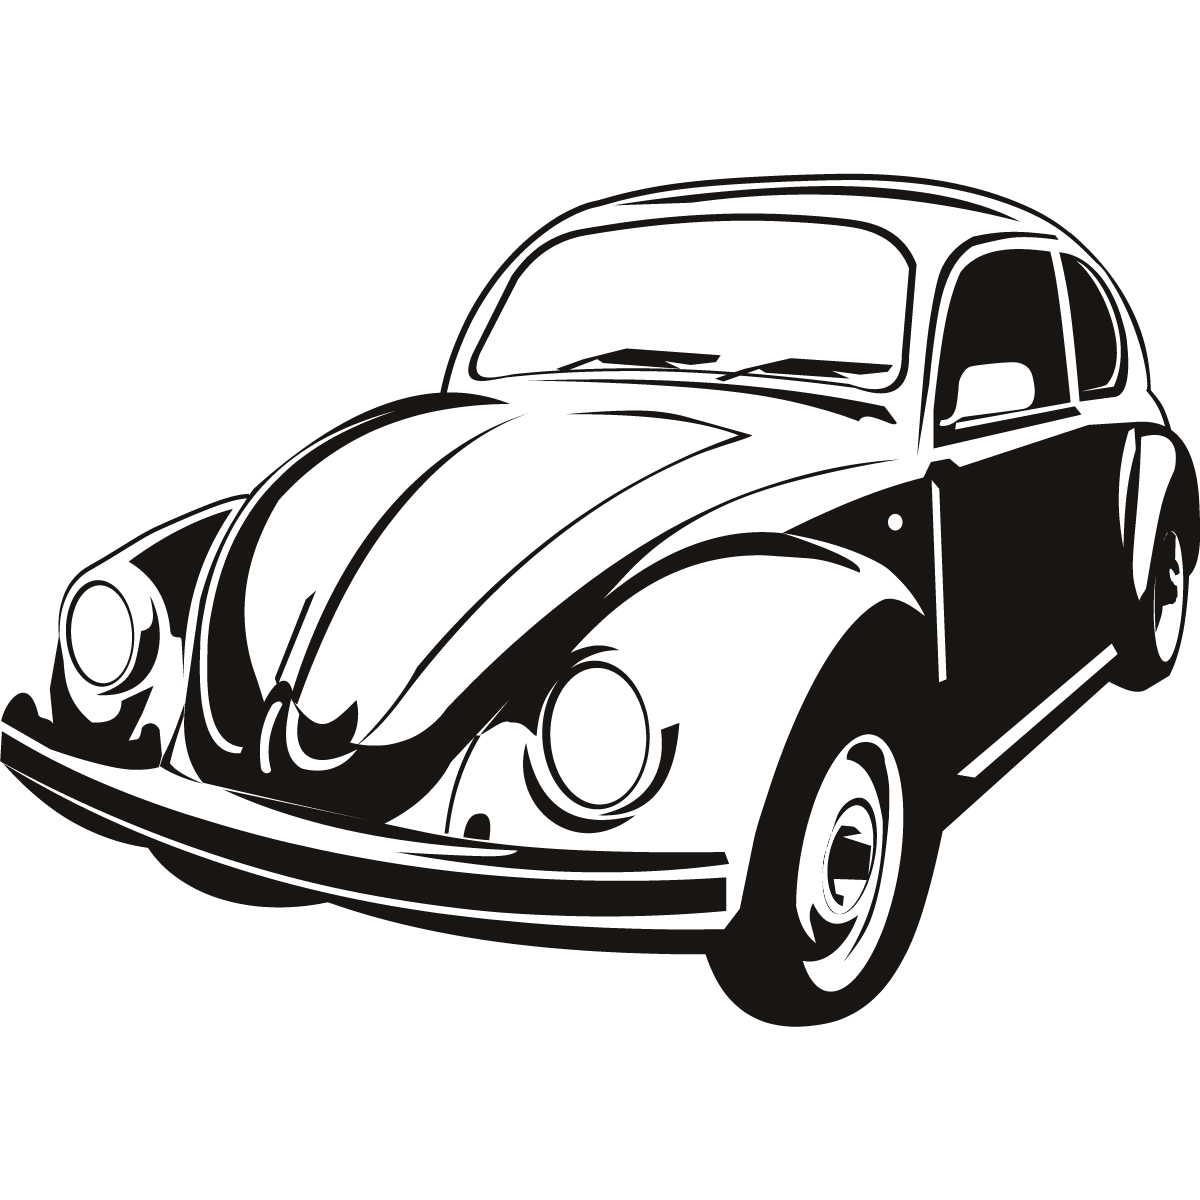 Vw Beetle Cars Transport Wall Art Sticker Wall Decal